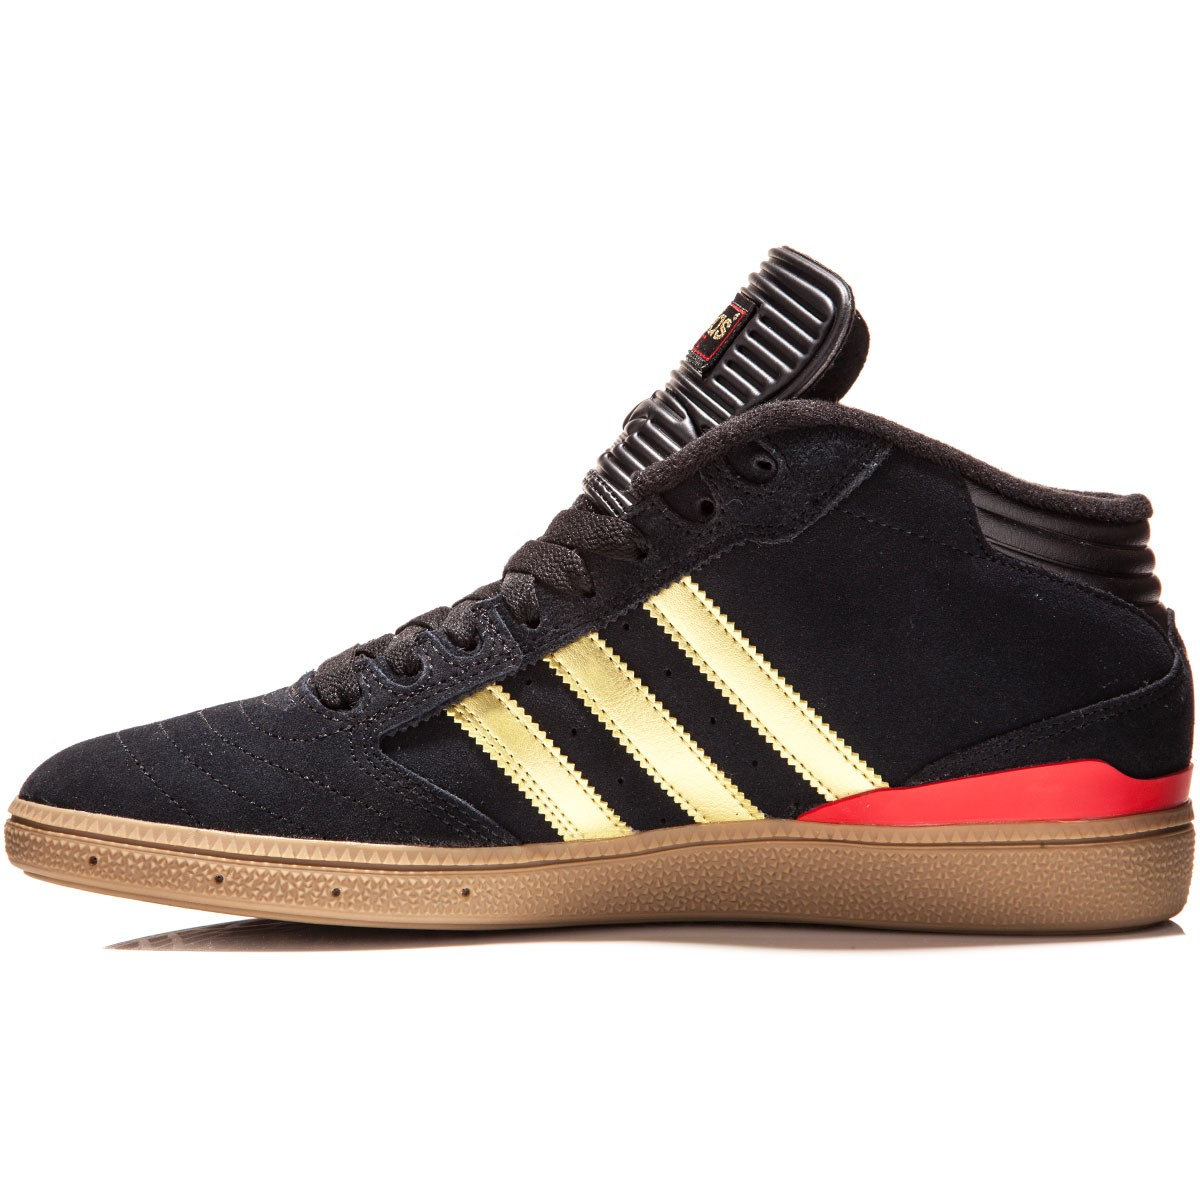 save off 5be8f 16d83 adidas-busenitz-pro-mid-shoes-black-gold-metallic-scarlet-3.1506689442.jpg